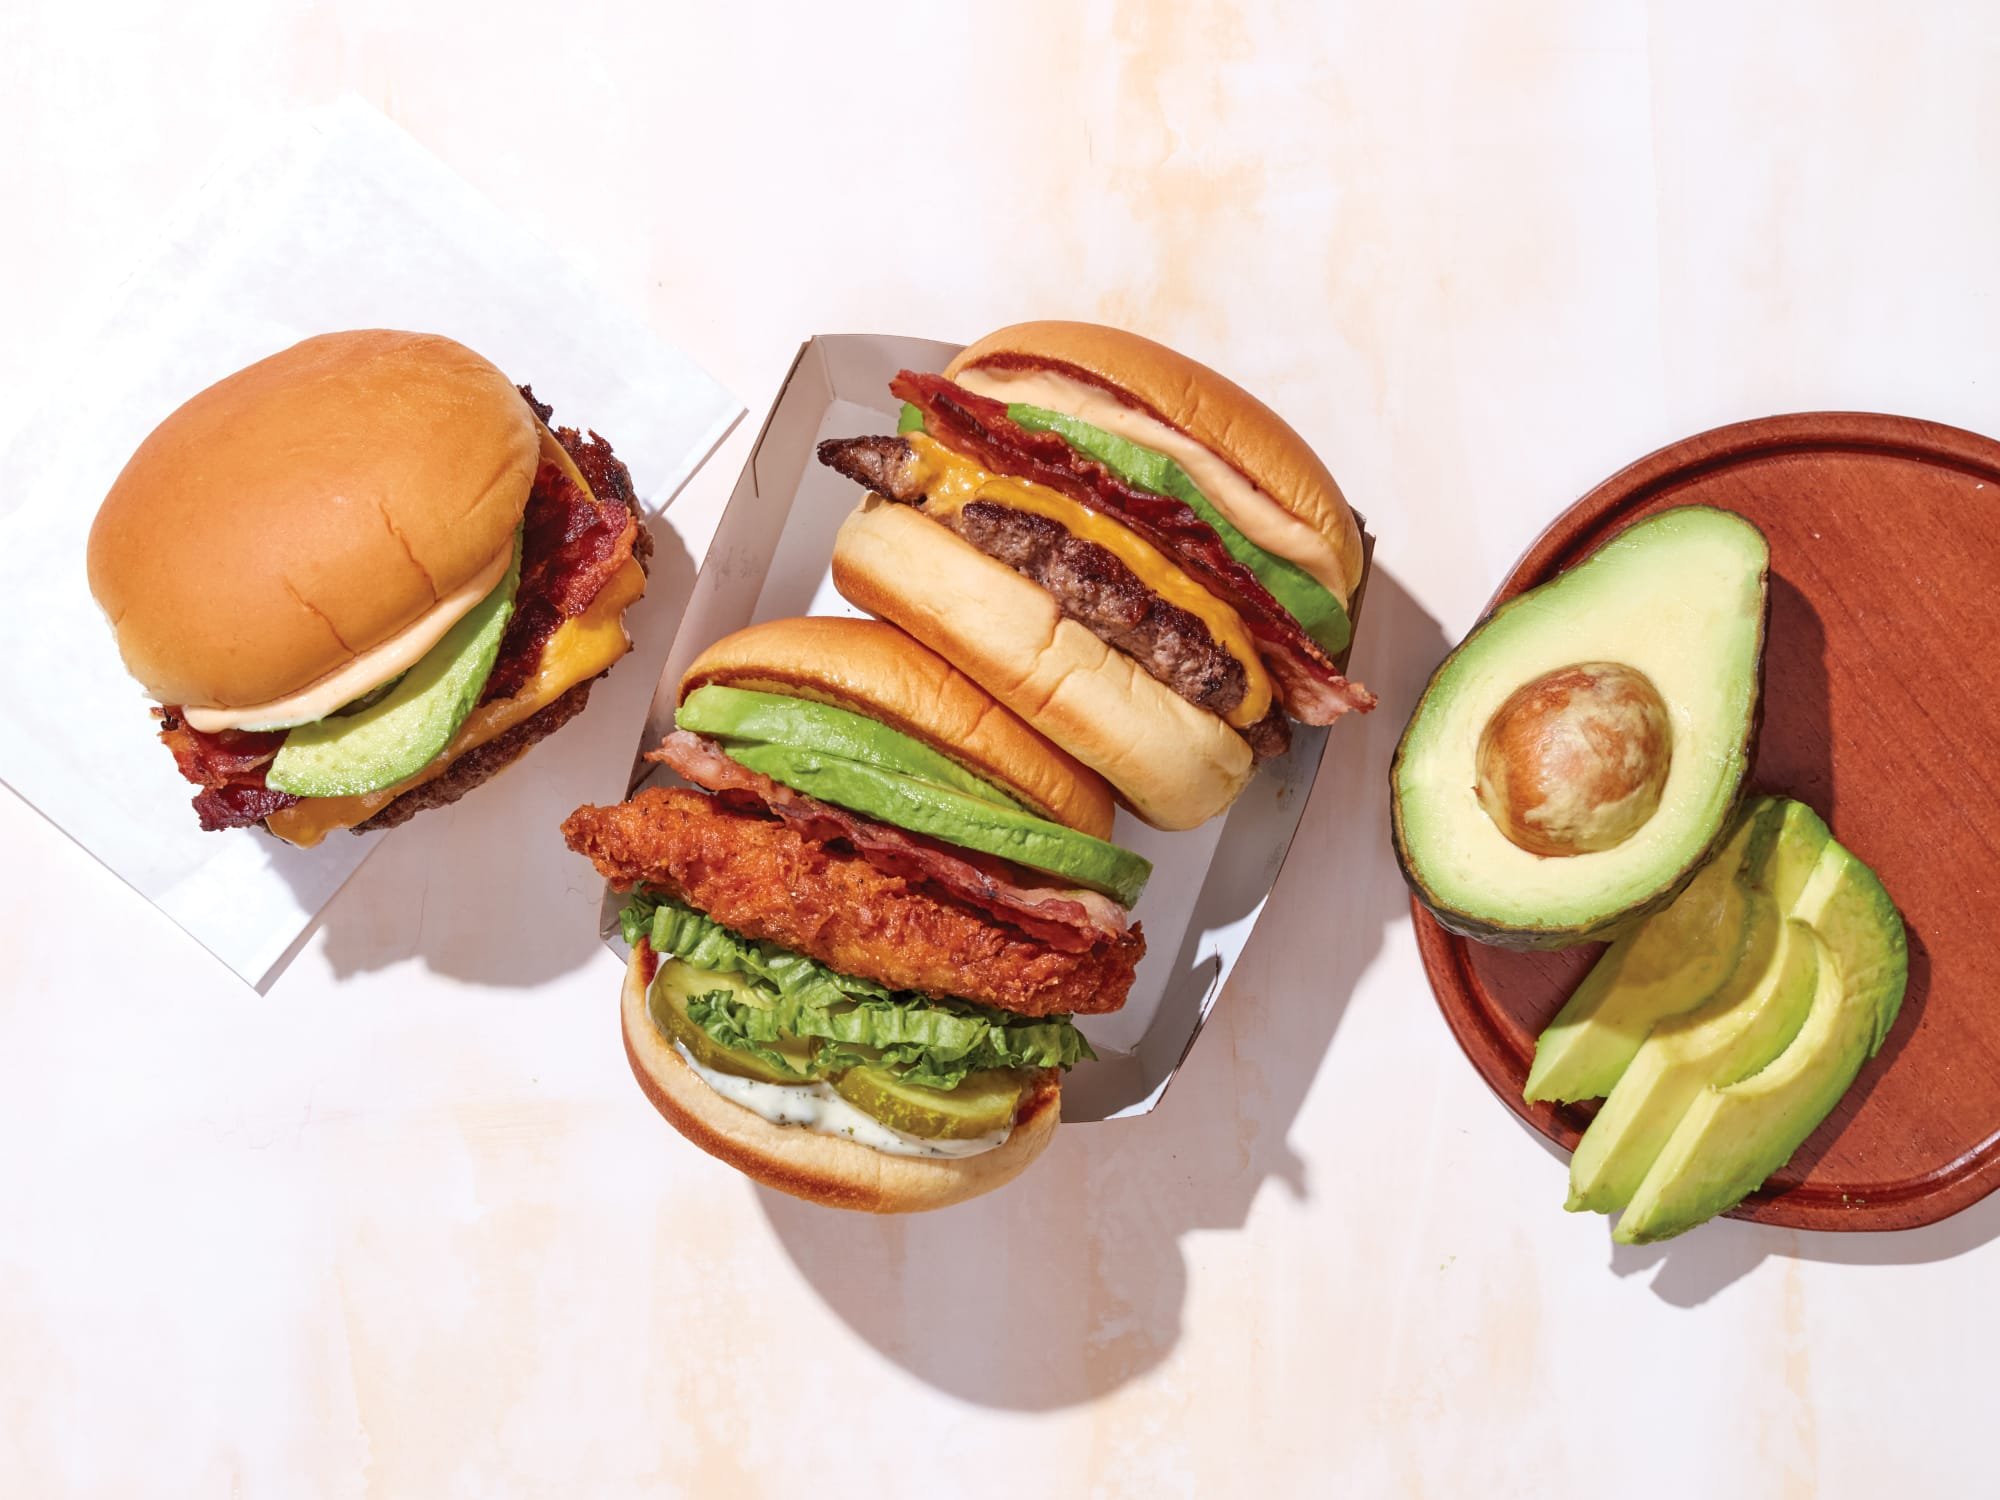 Shake Shack adds Avocado Bacon menu and guests are ecstatic